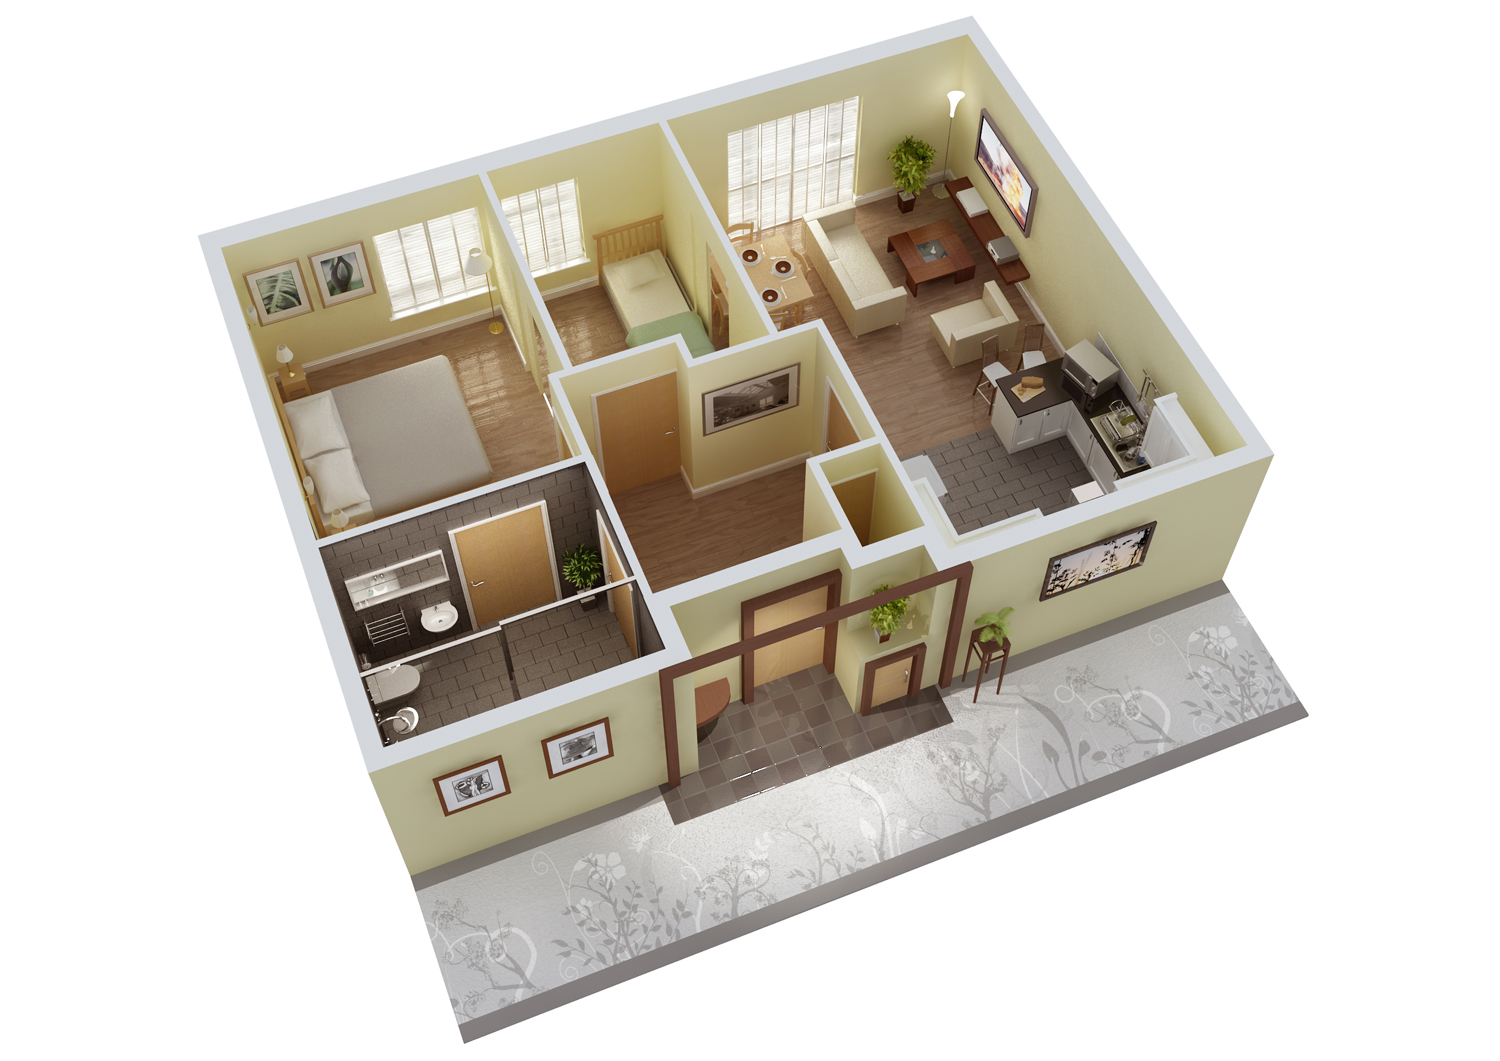 Mathematics resources project 3d floor plan Blueprint designer free